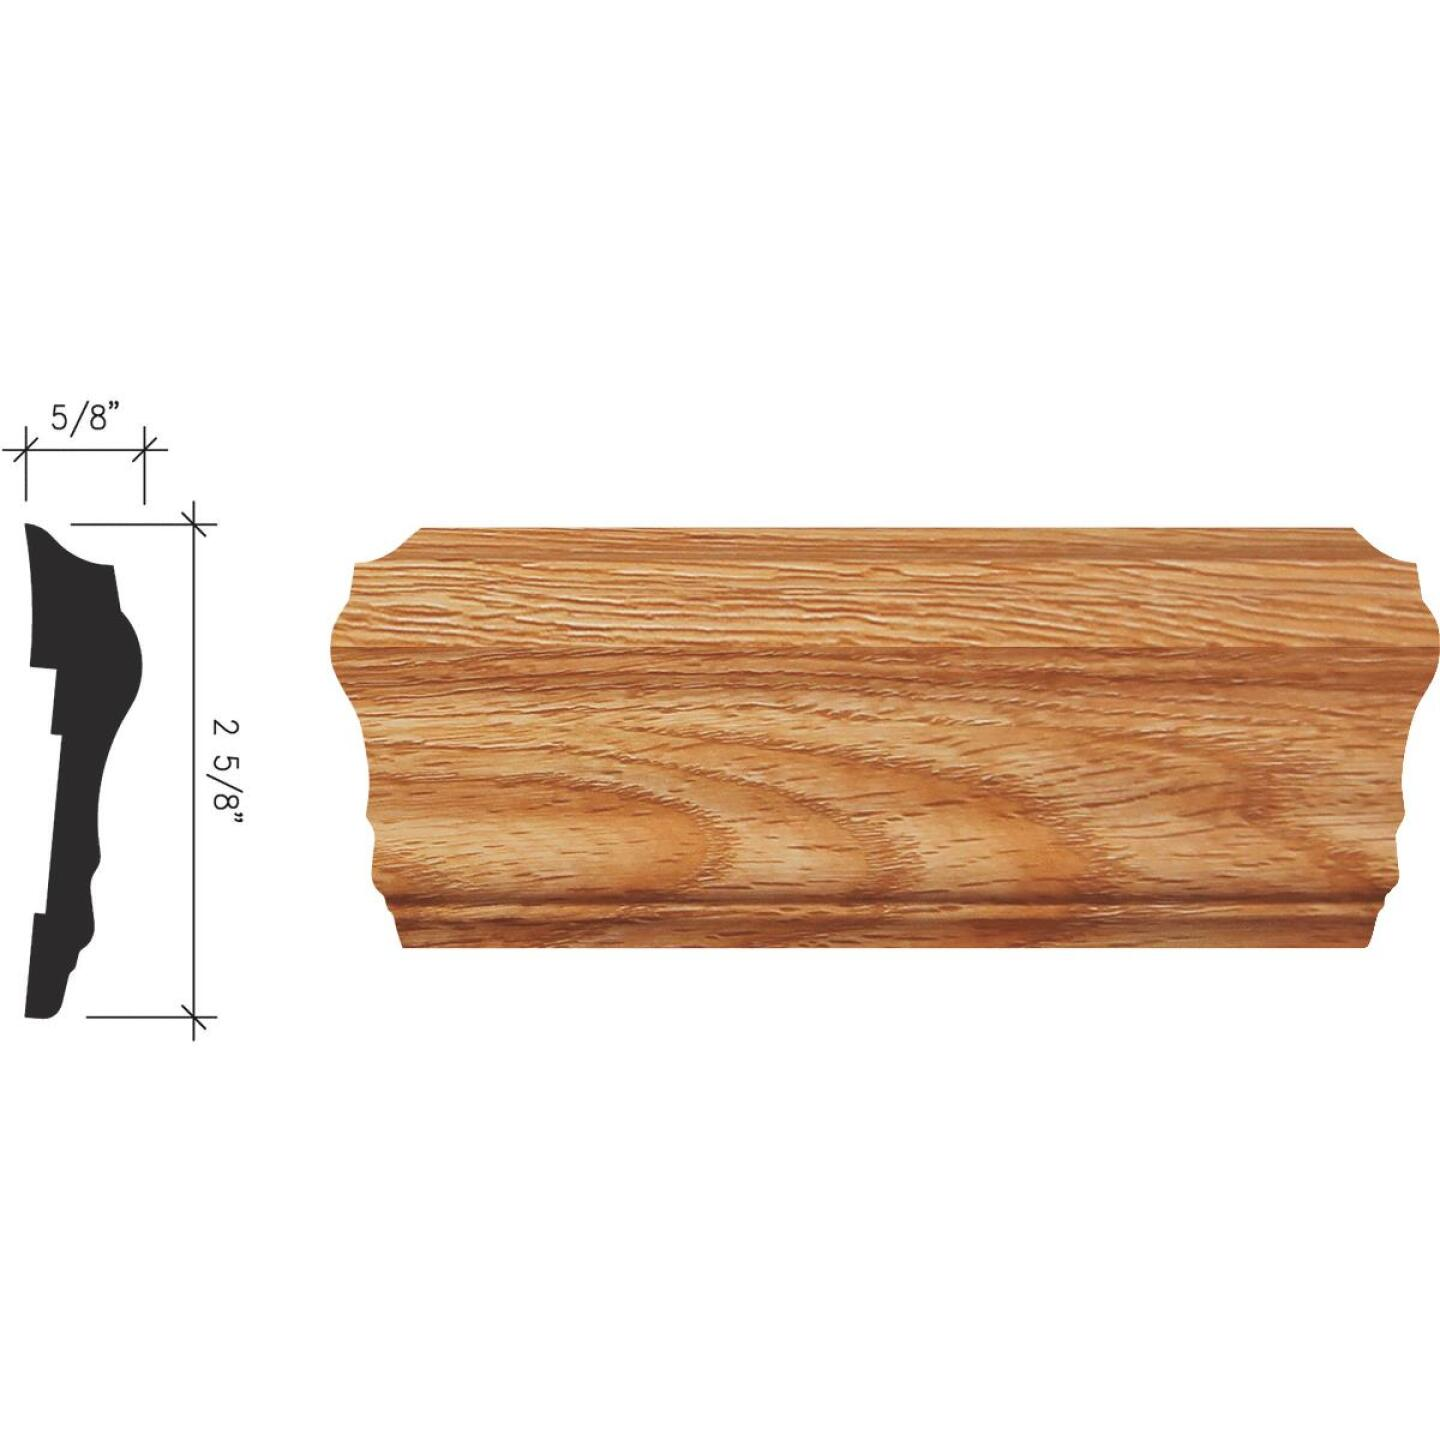 Inteplast Building Products 5/8 In. x 2-5/8 In. x 8 Ft. Majestic Oak Polystyrene Chair Rail Molding Image 1